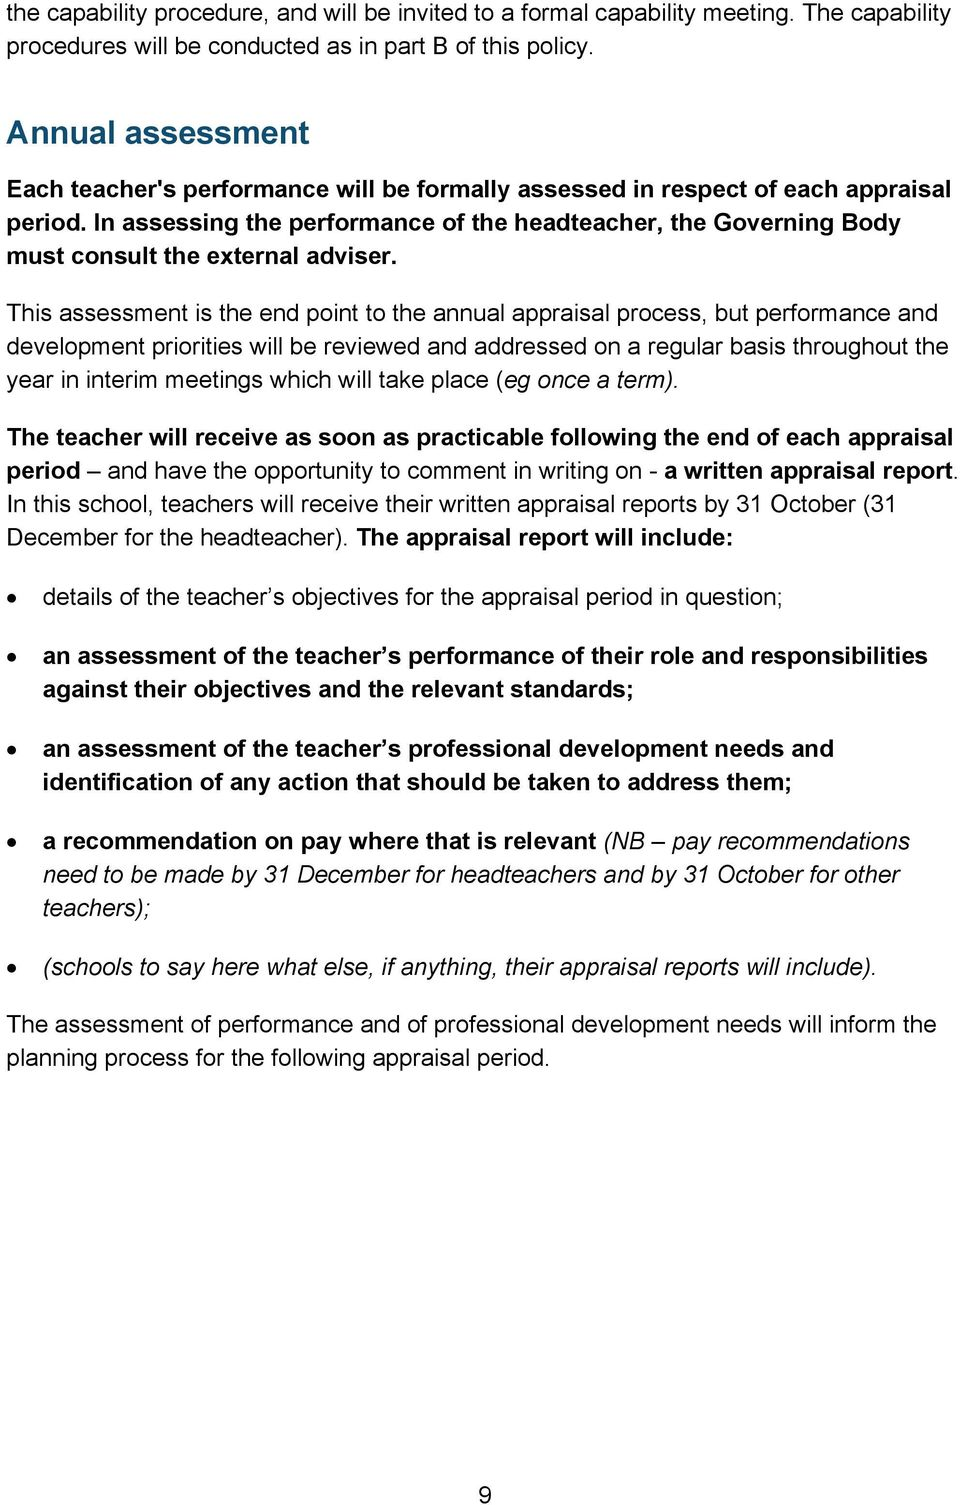 In assessing the performance of the headteacher, the Governing Body must consult the external adviser.